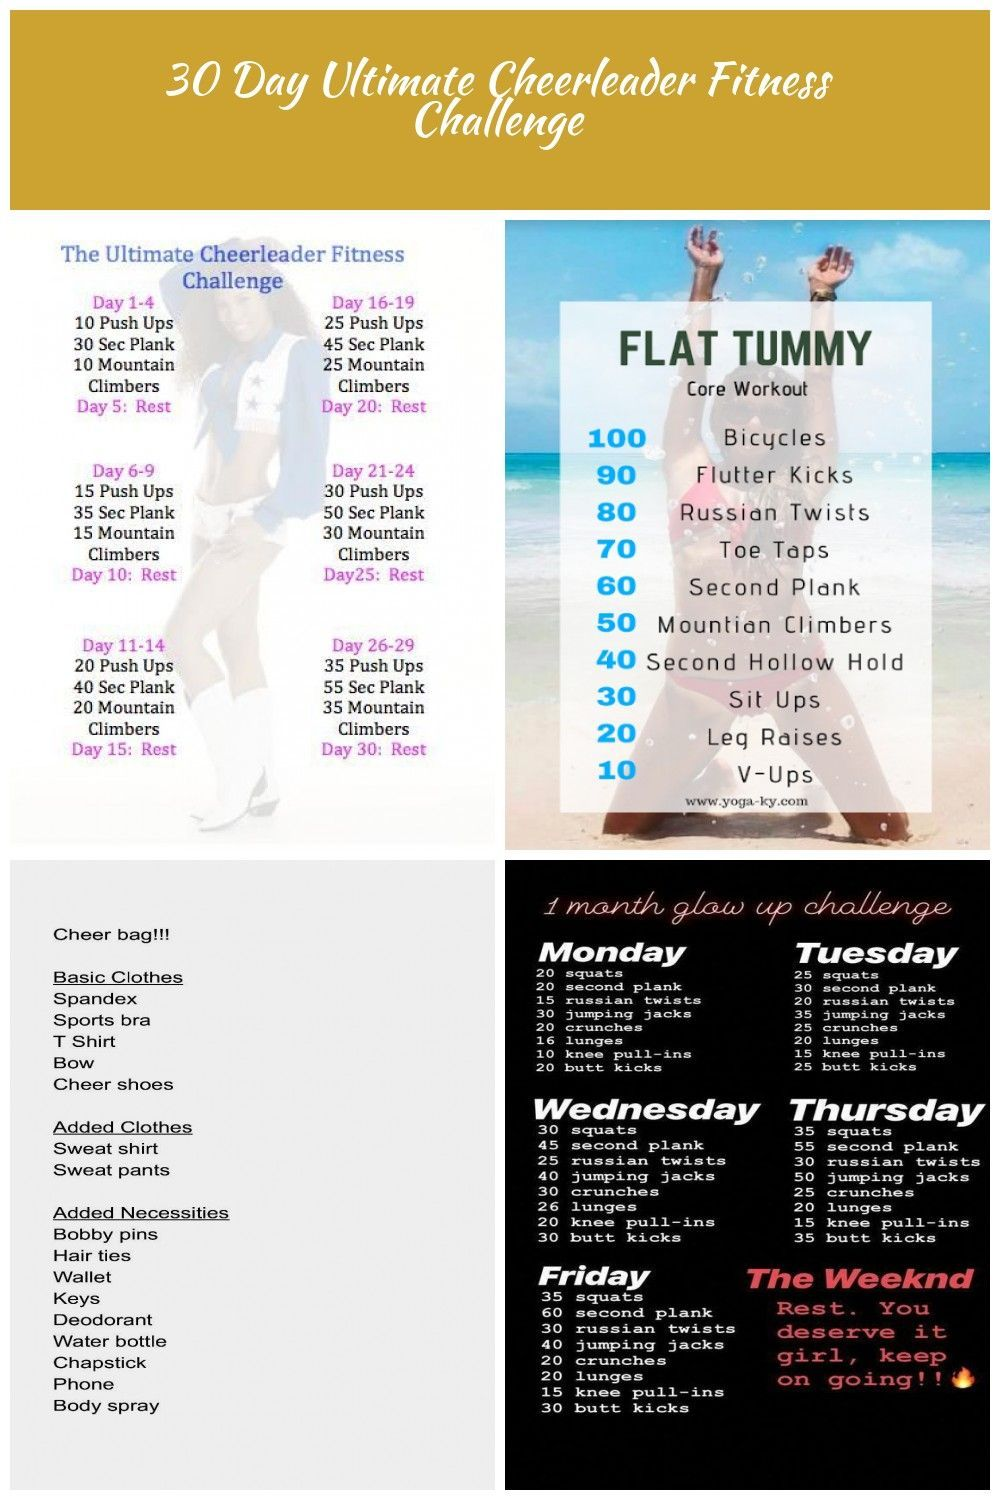 30 day cheer challenge cheer Workouts 30 Day Ultimate Cheerleader Fitness Challenge #cheerworkouts 30 day cheer challenge cheer Workouts 30 Day Ultimate Cheerleader Fitness Challenge #cheerworkouts